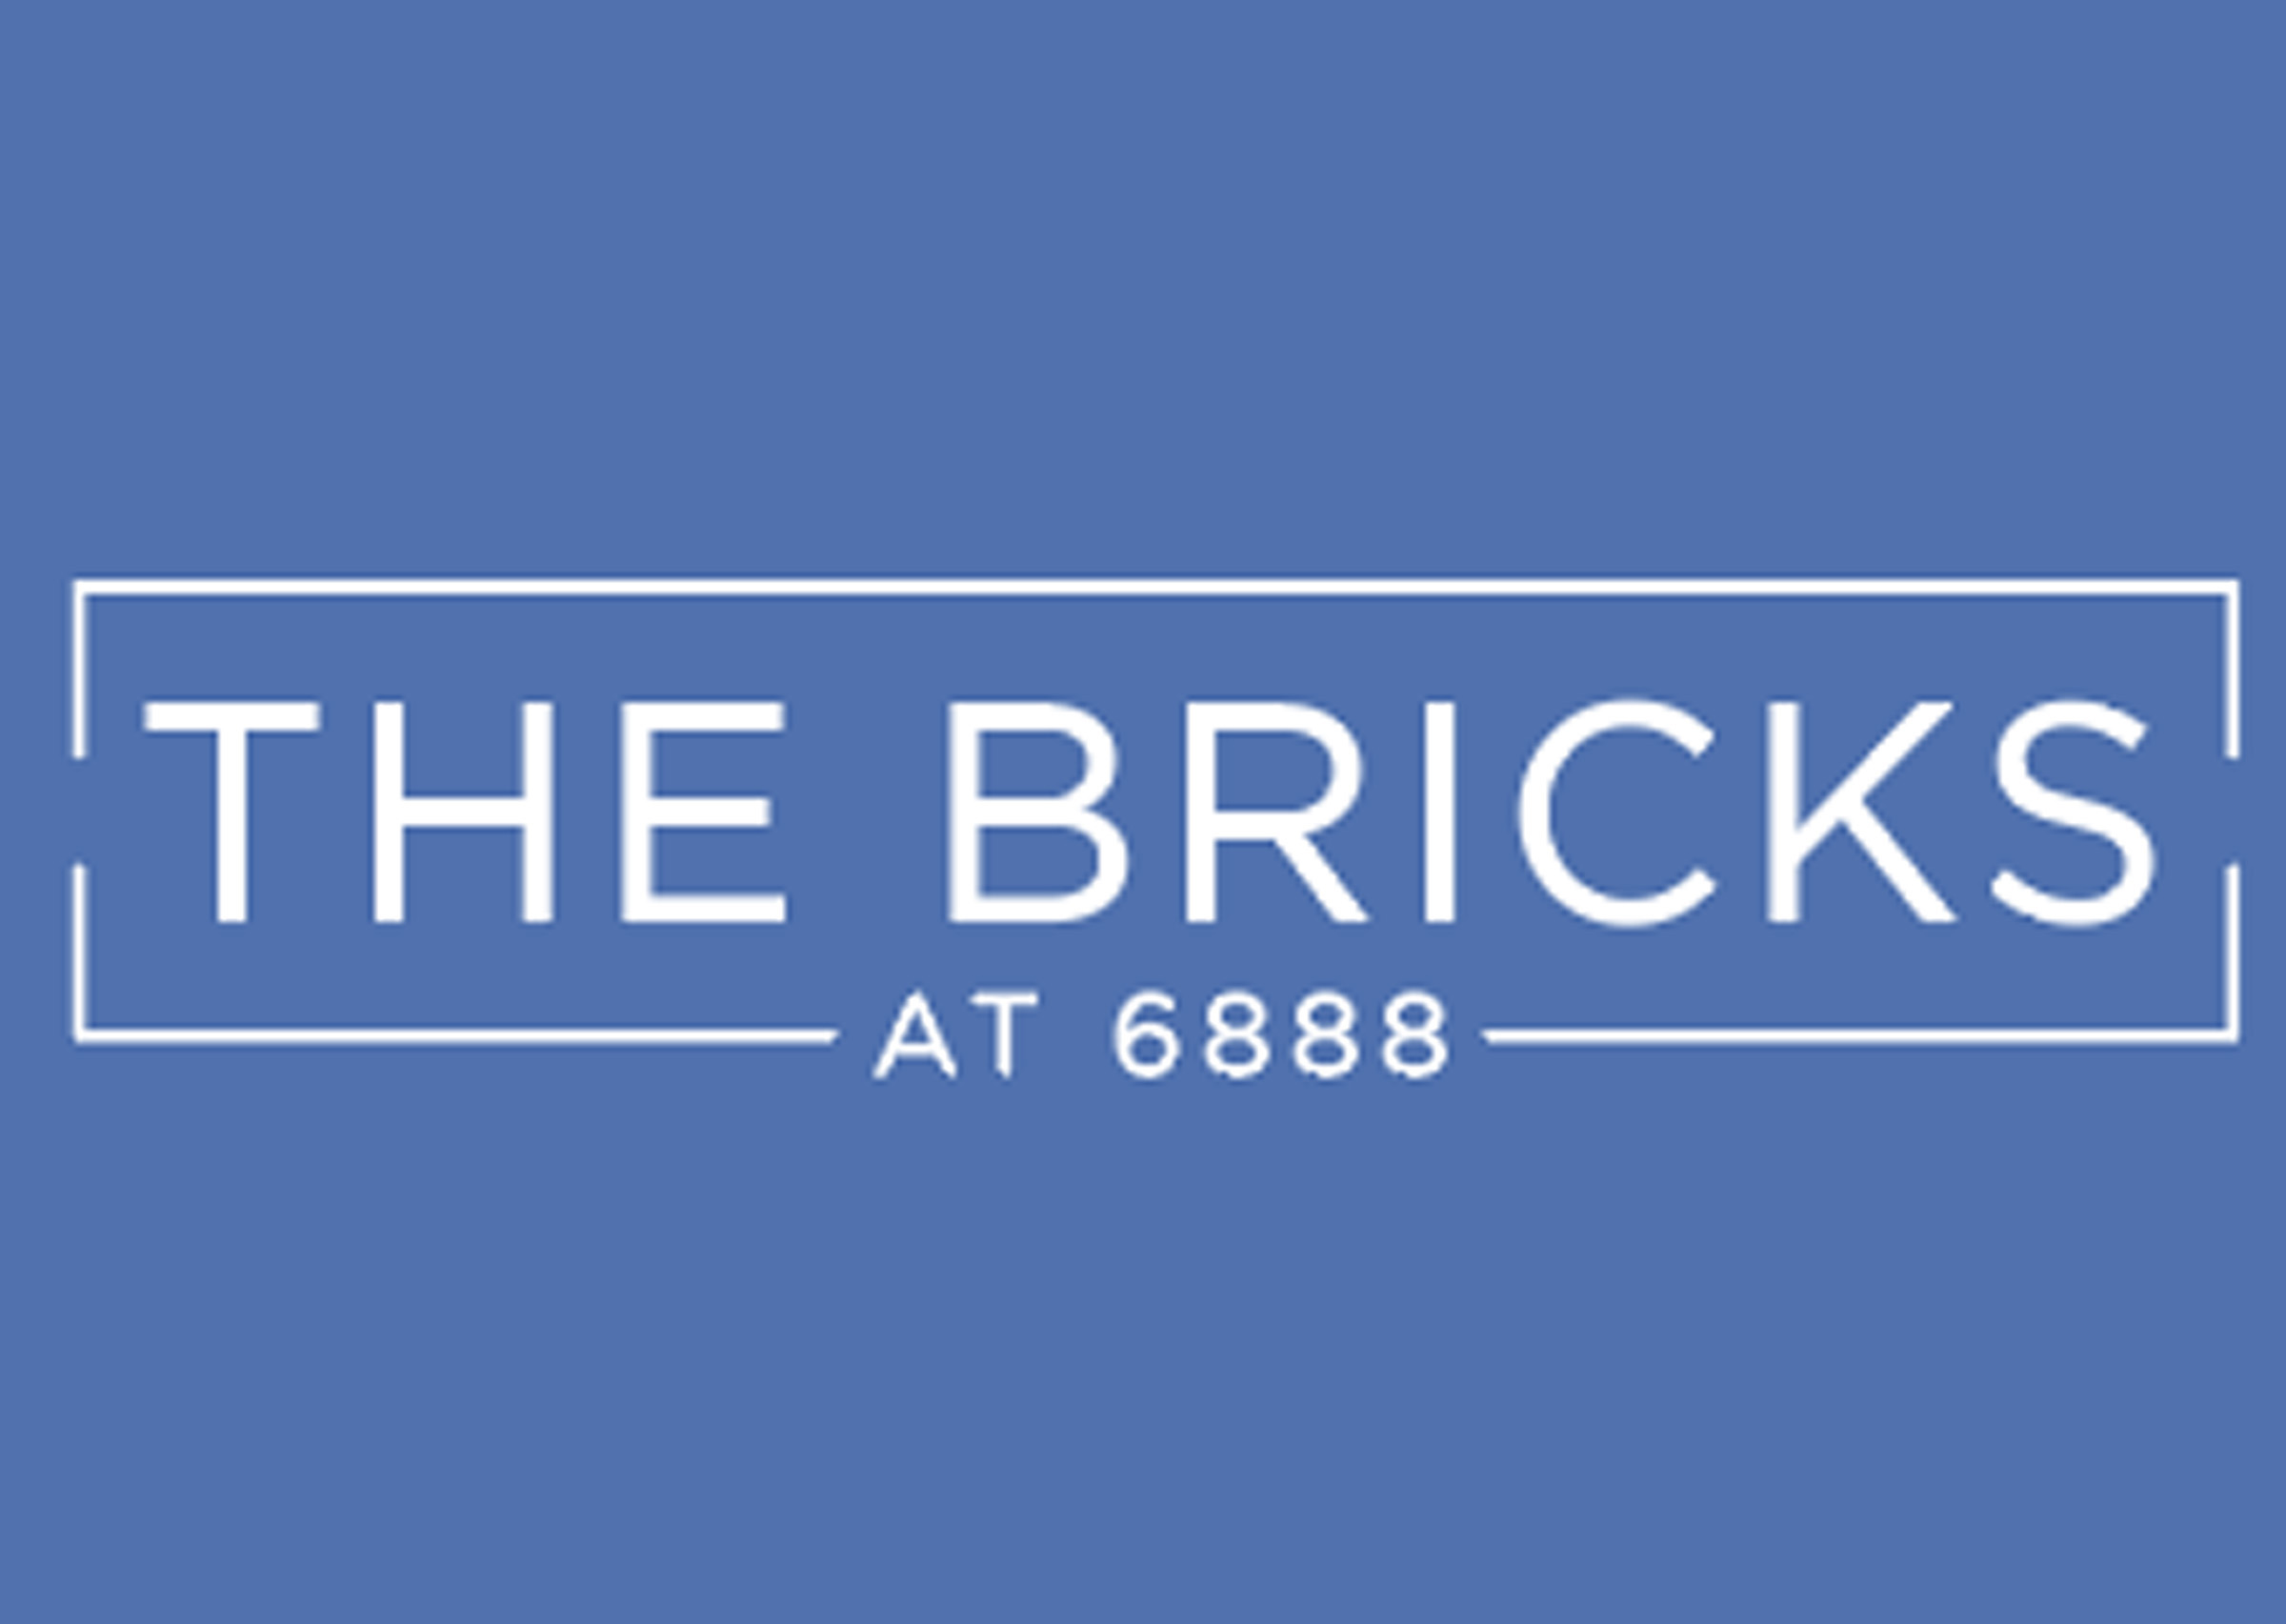 The Bricks at 6888